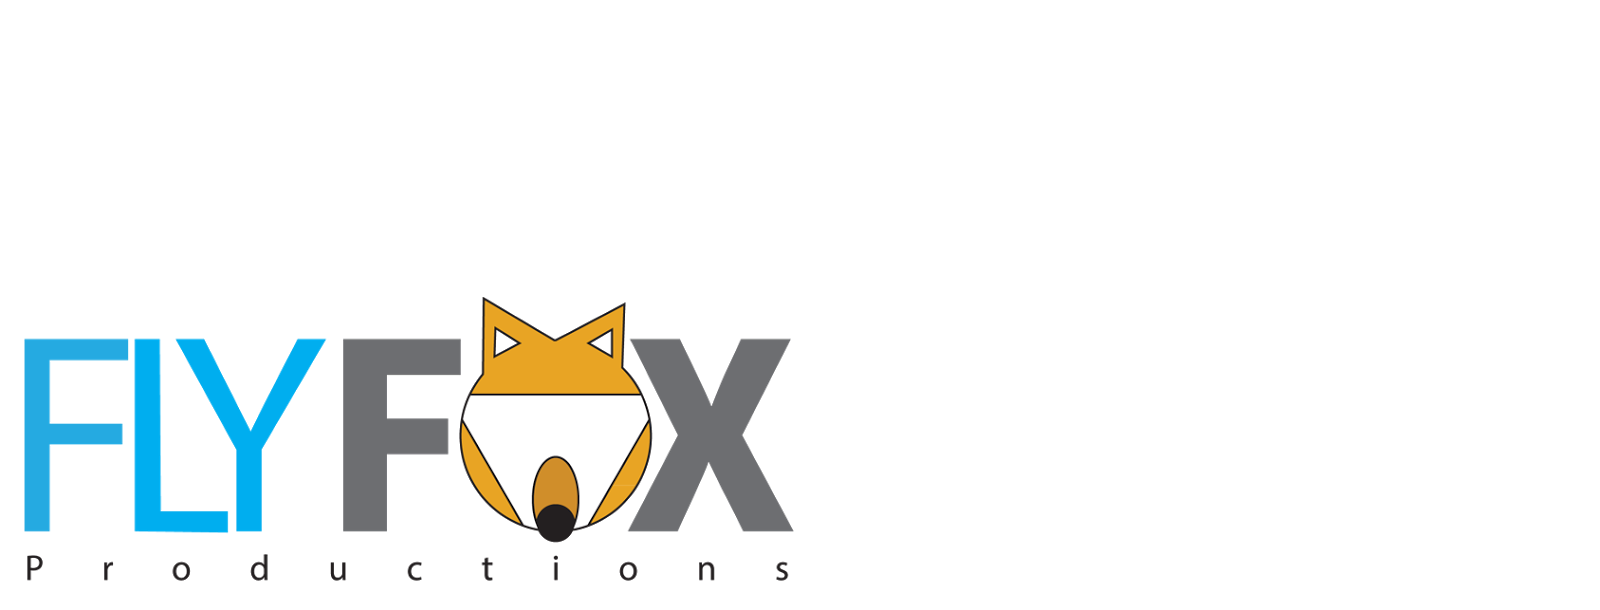 Fly Fox Productions